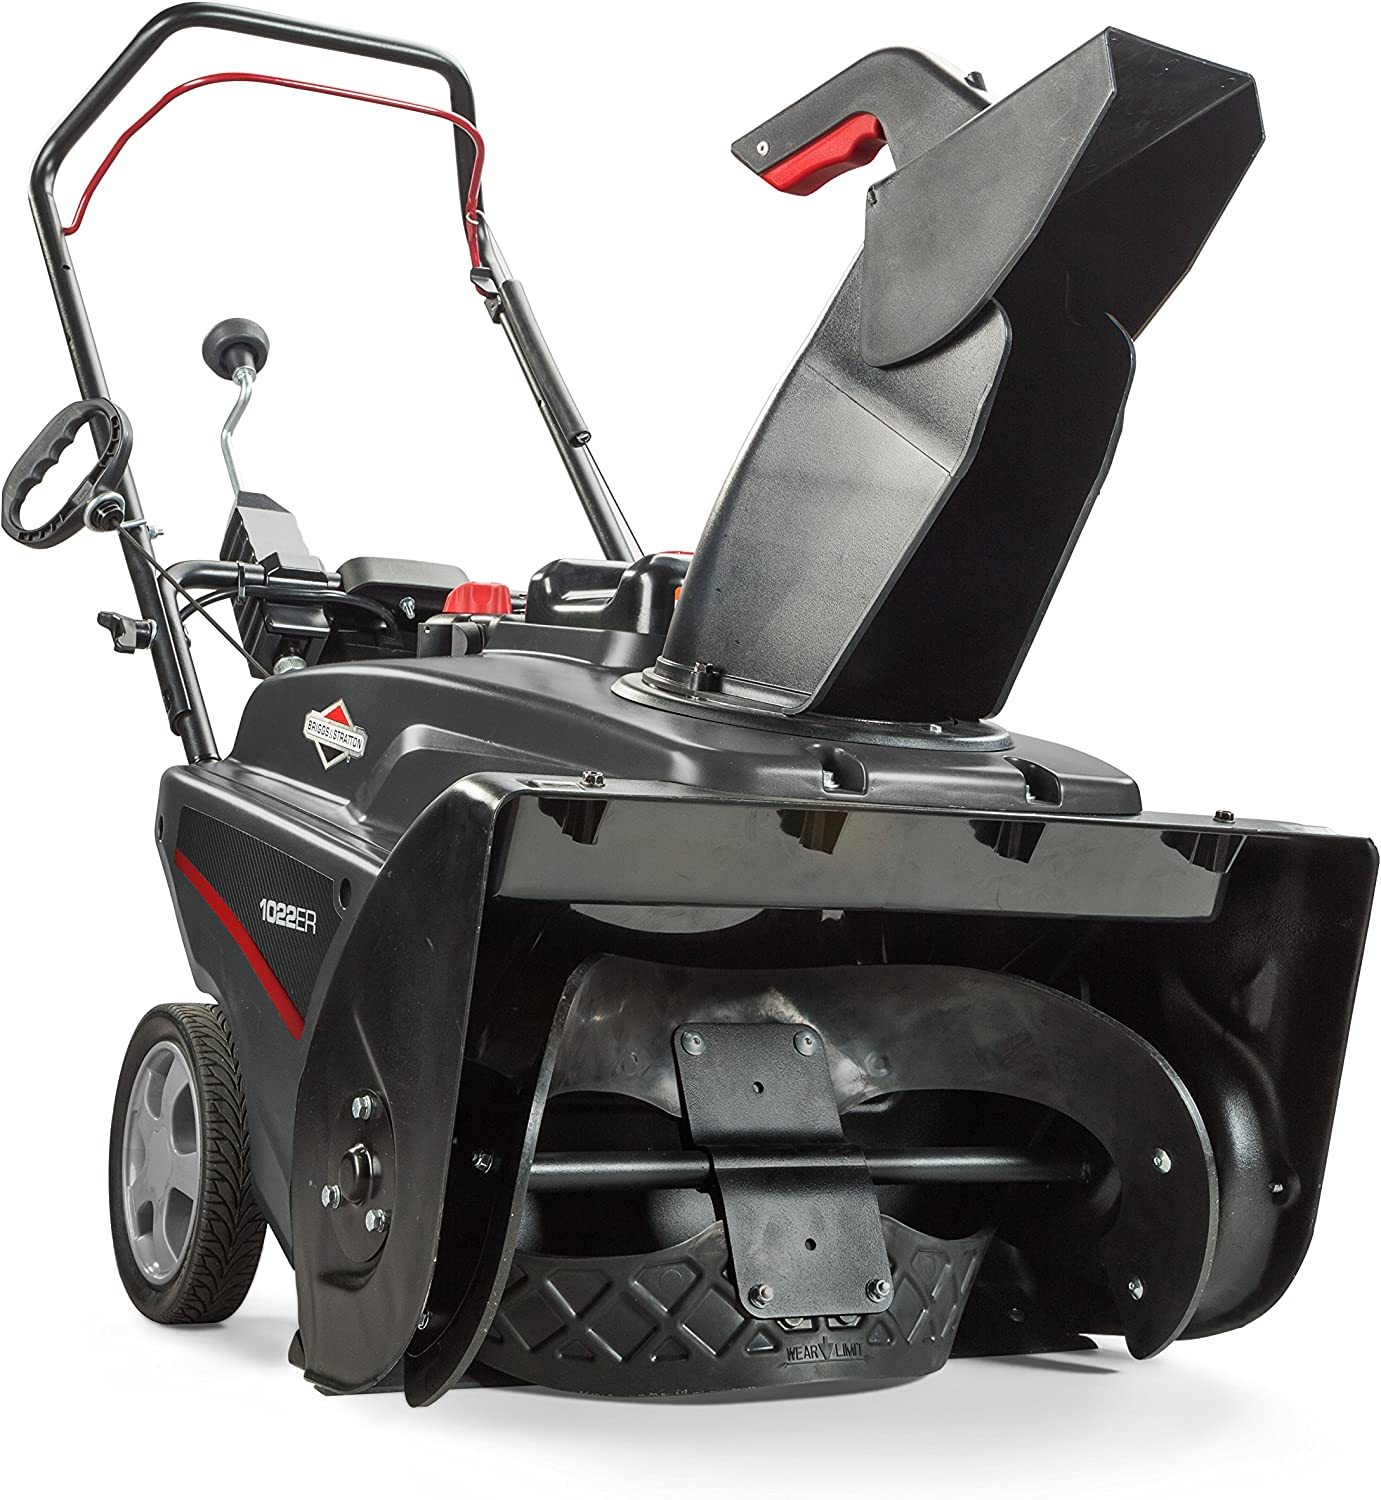 Briggs & Stratton Single Stage Snow Blower